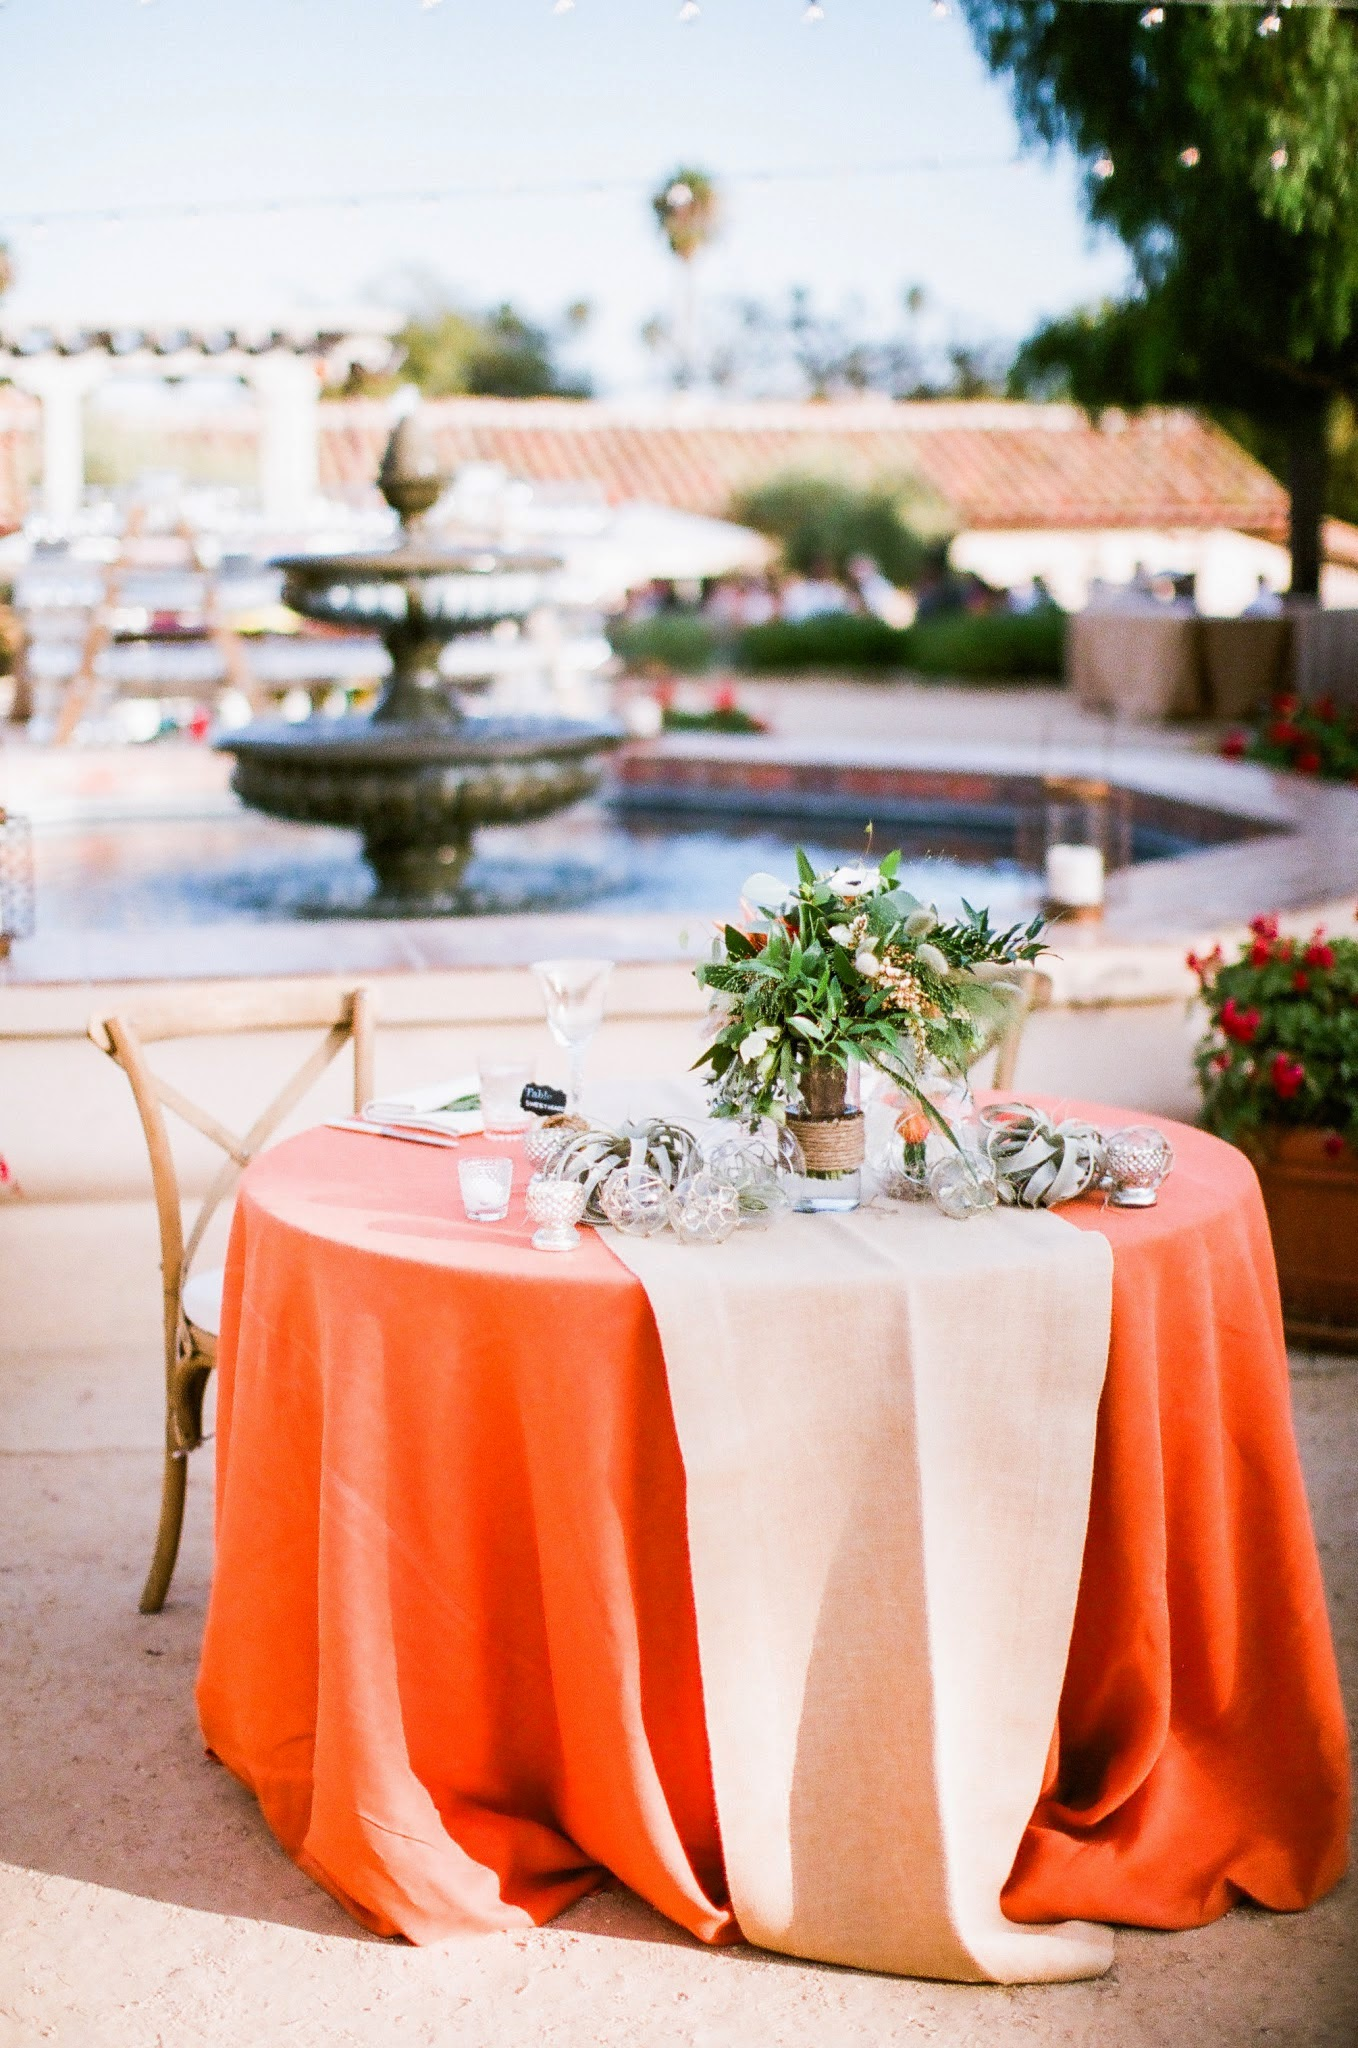 www.felicievents.com | Felici Events | Historical Museum Wedding | Eclectic Orange Wedding | Sweetheart Table